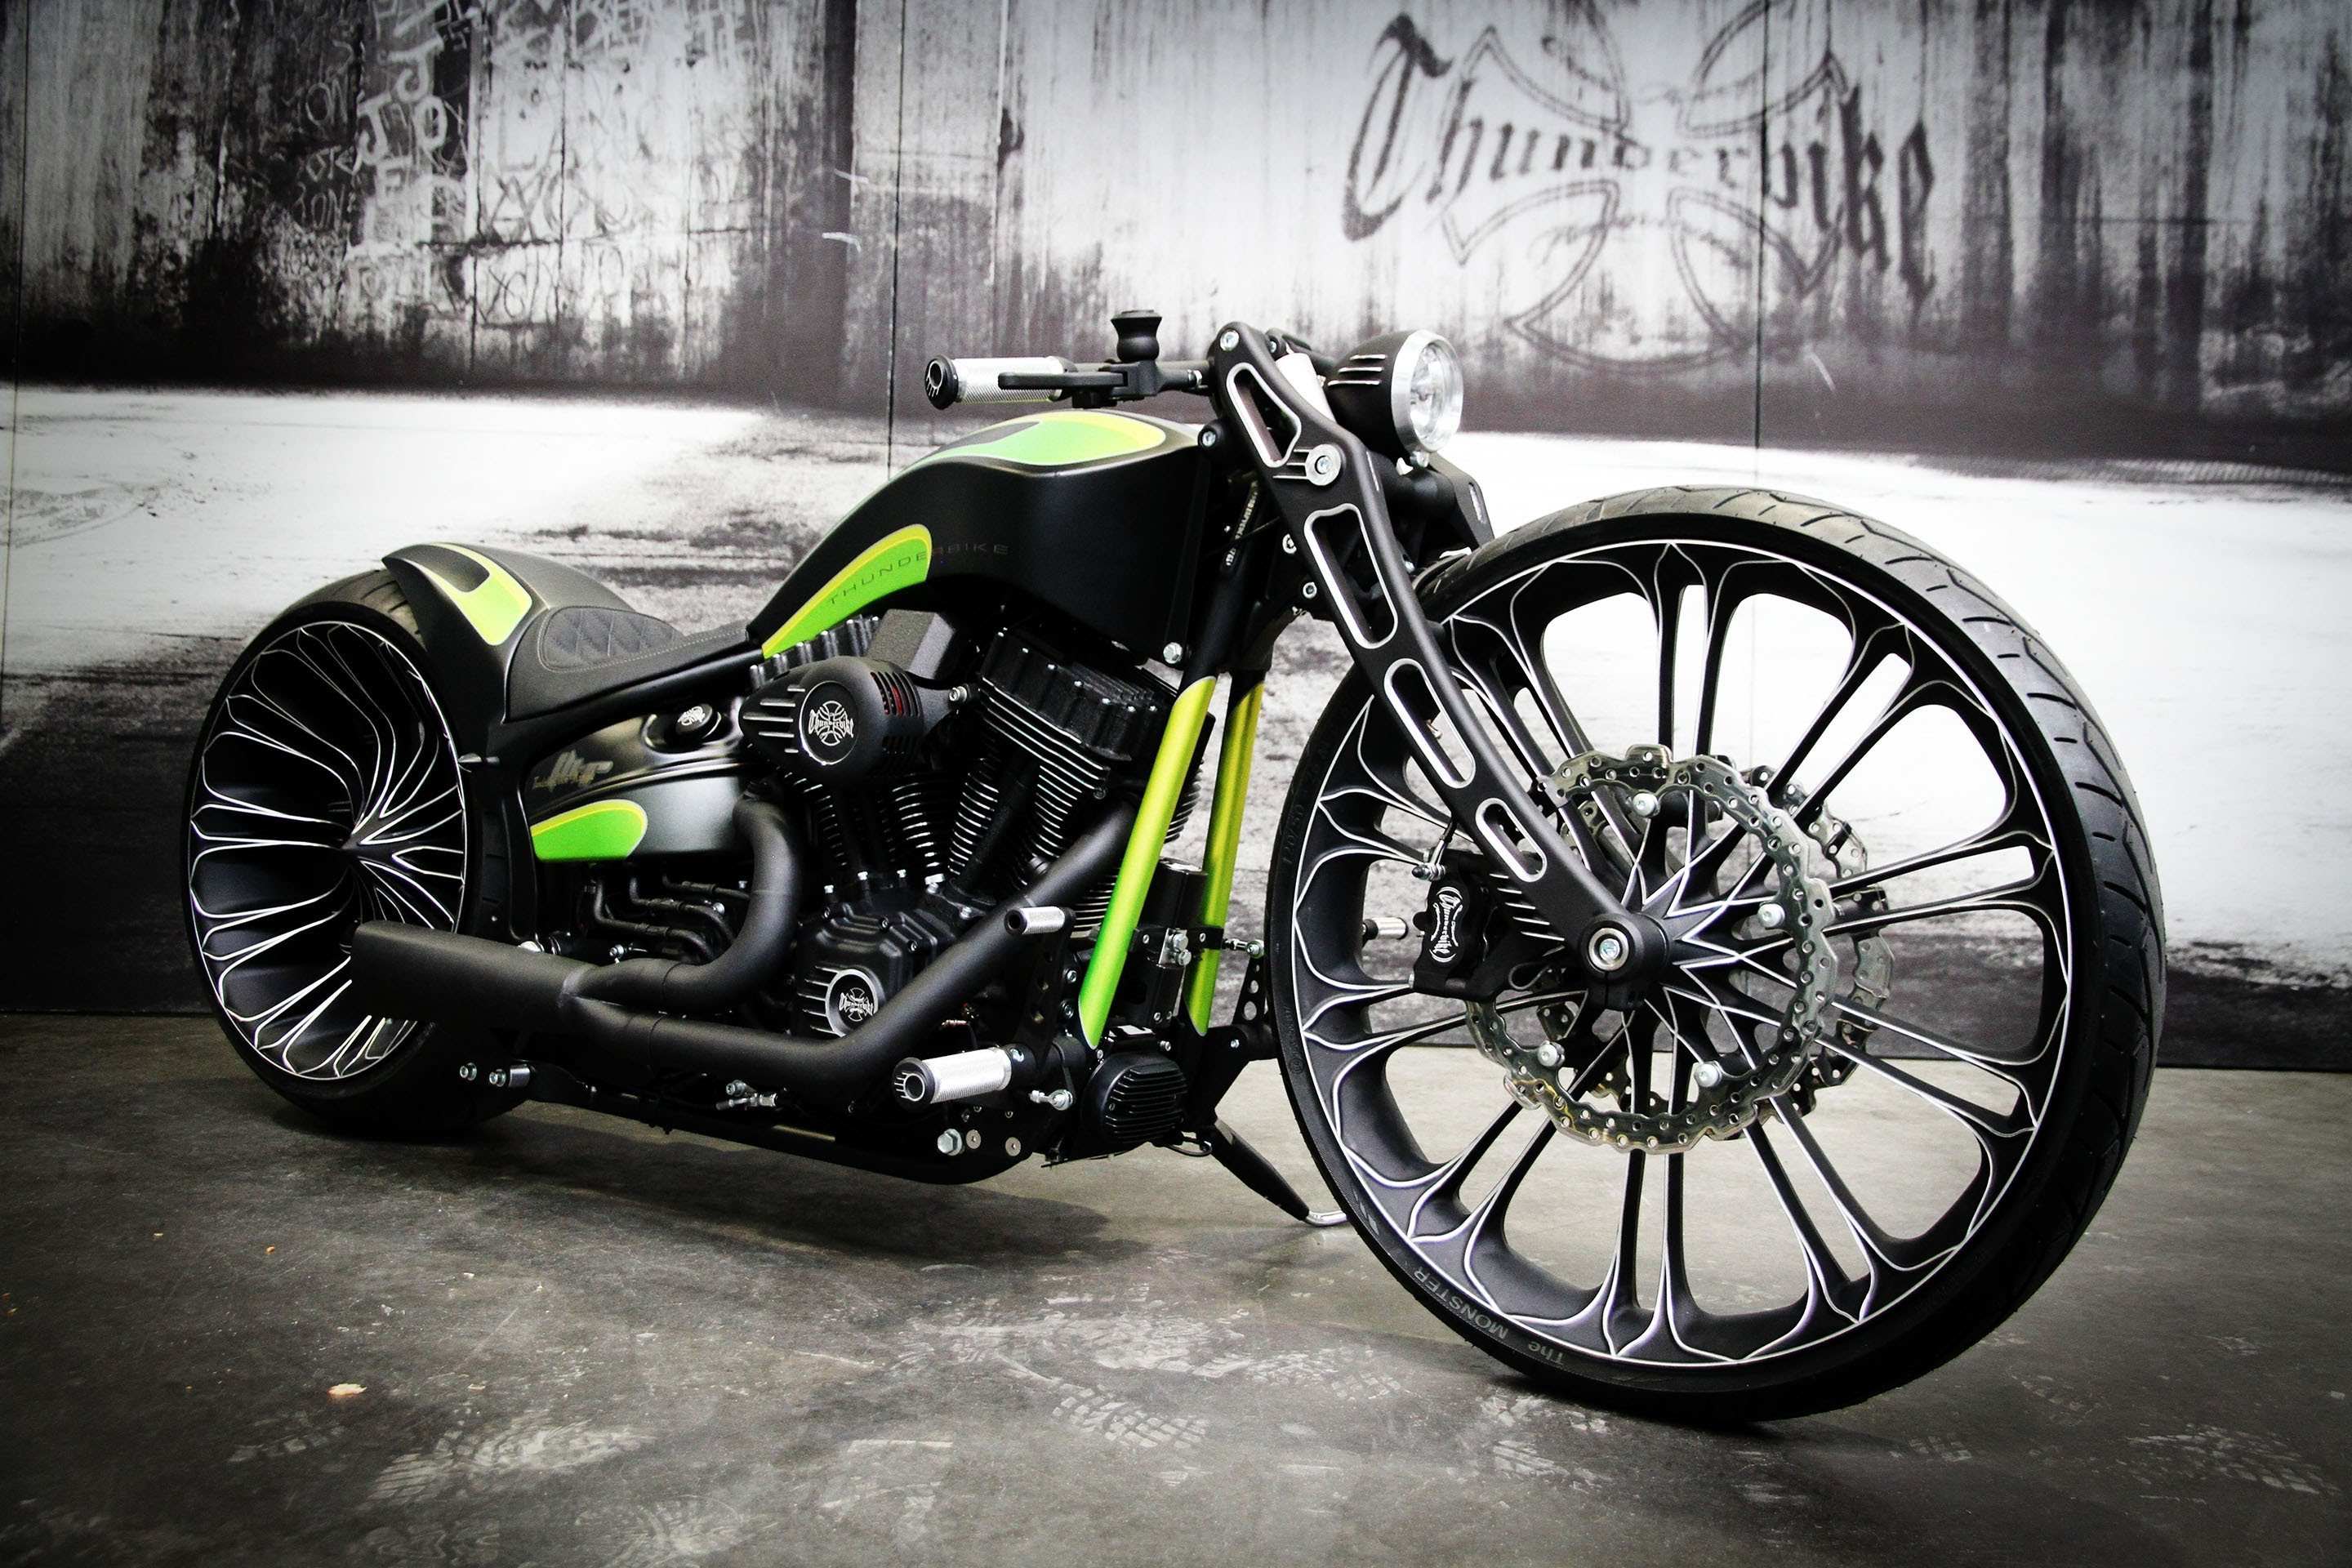 THUNDERBIKE custom chopper bobber bike 1tbike motorbike ...